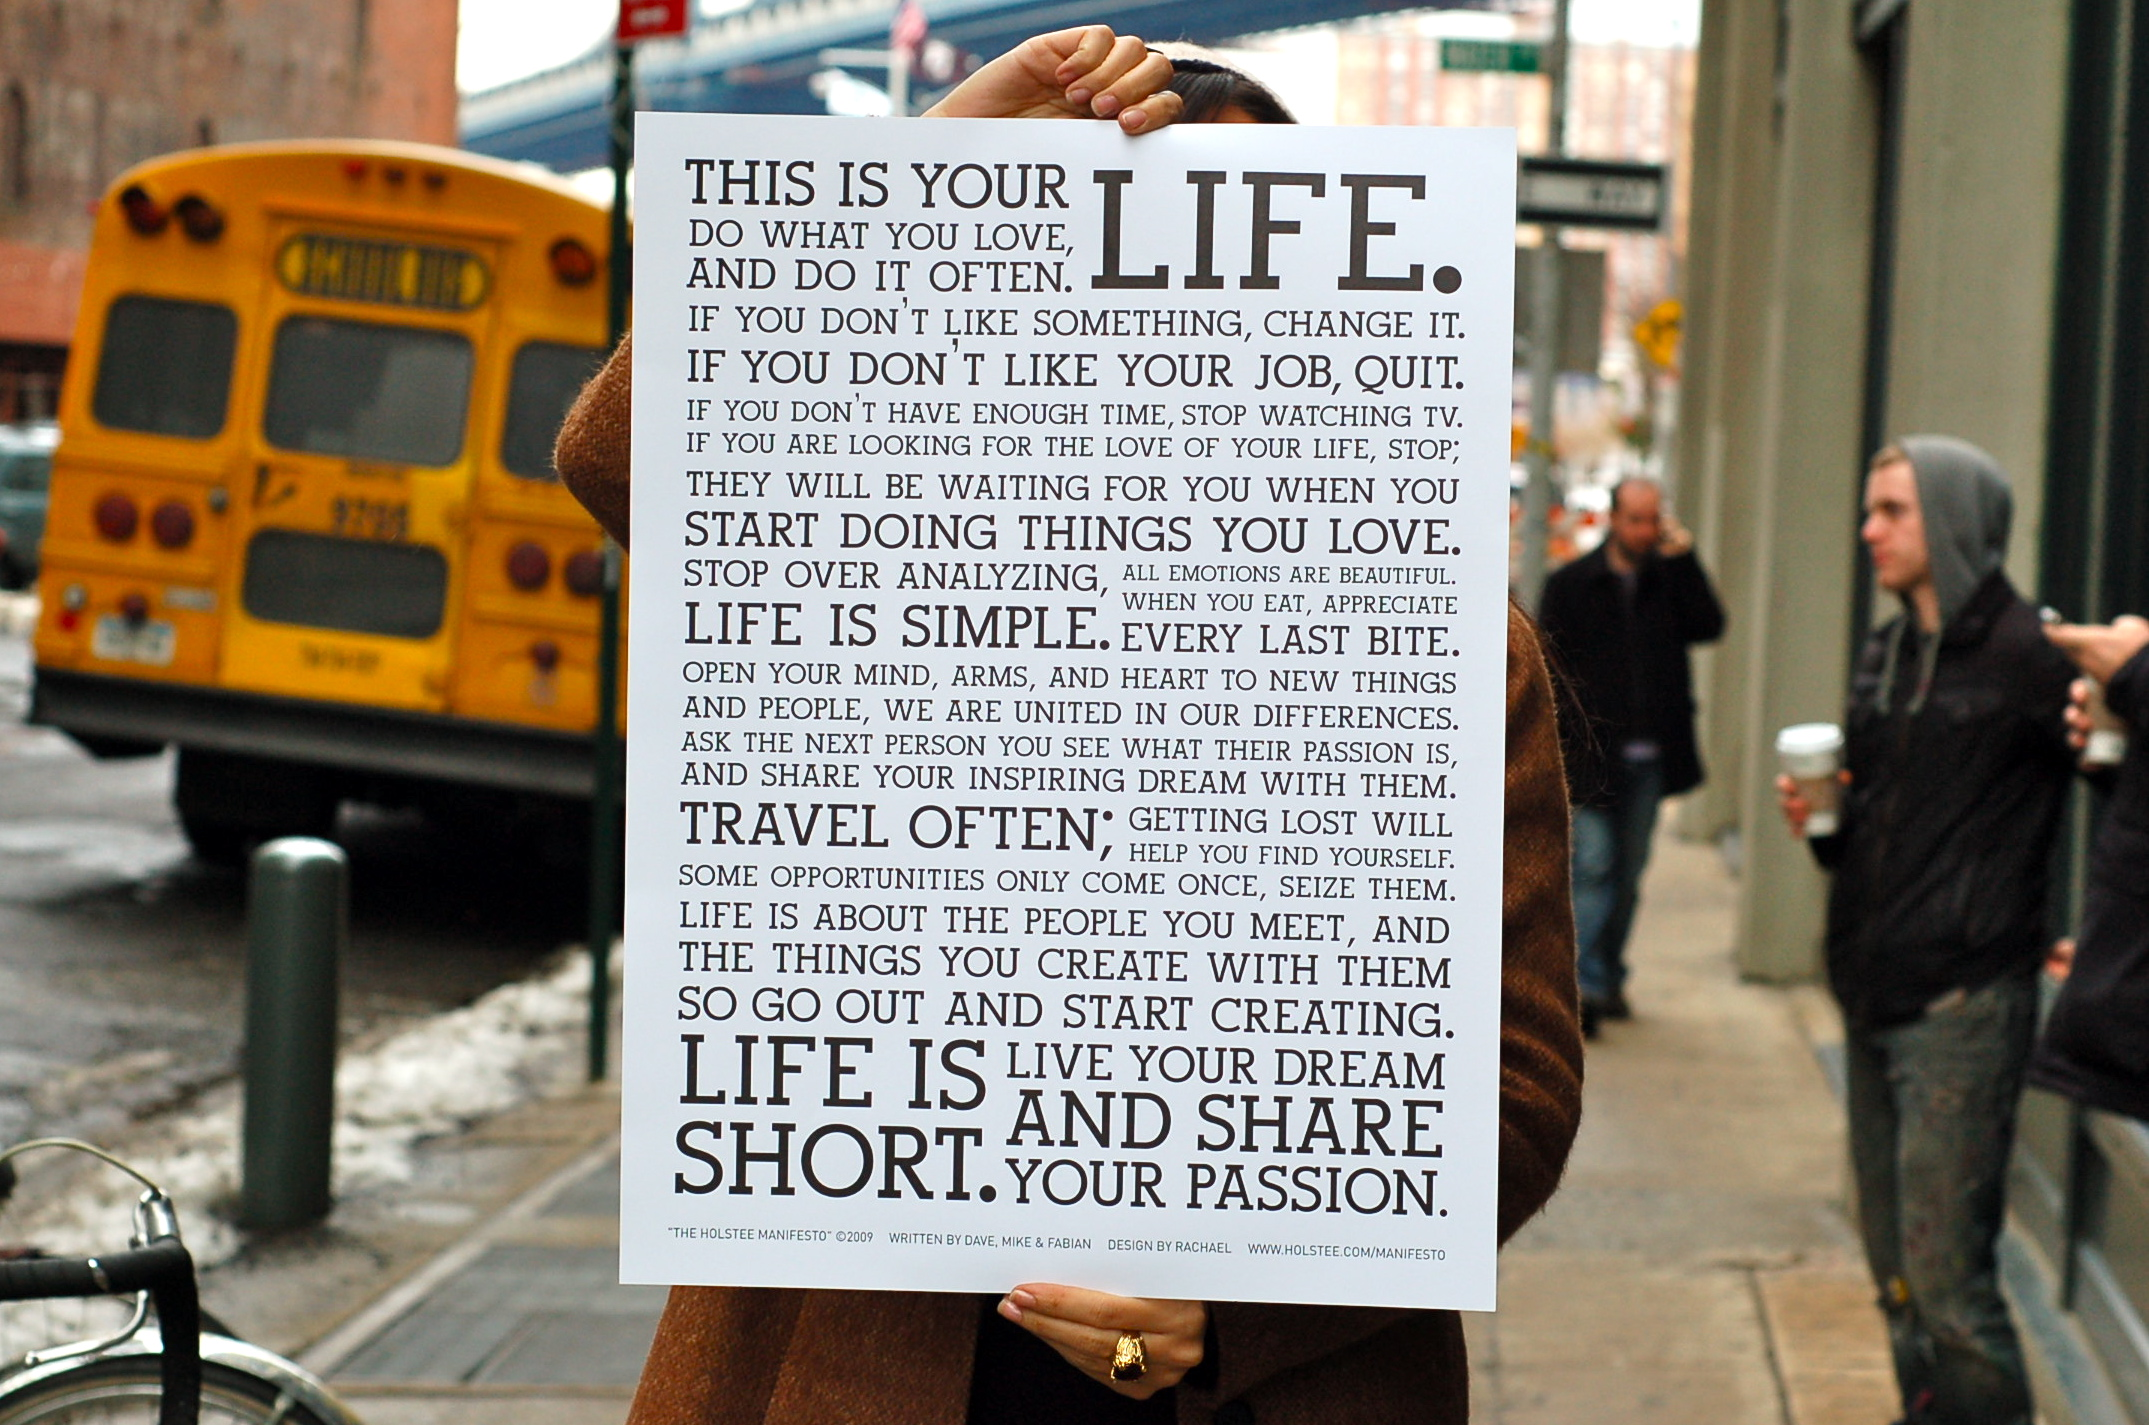 This is your life……..